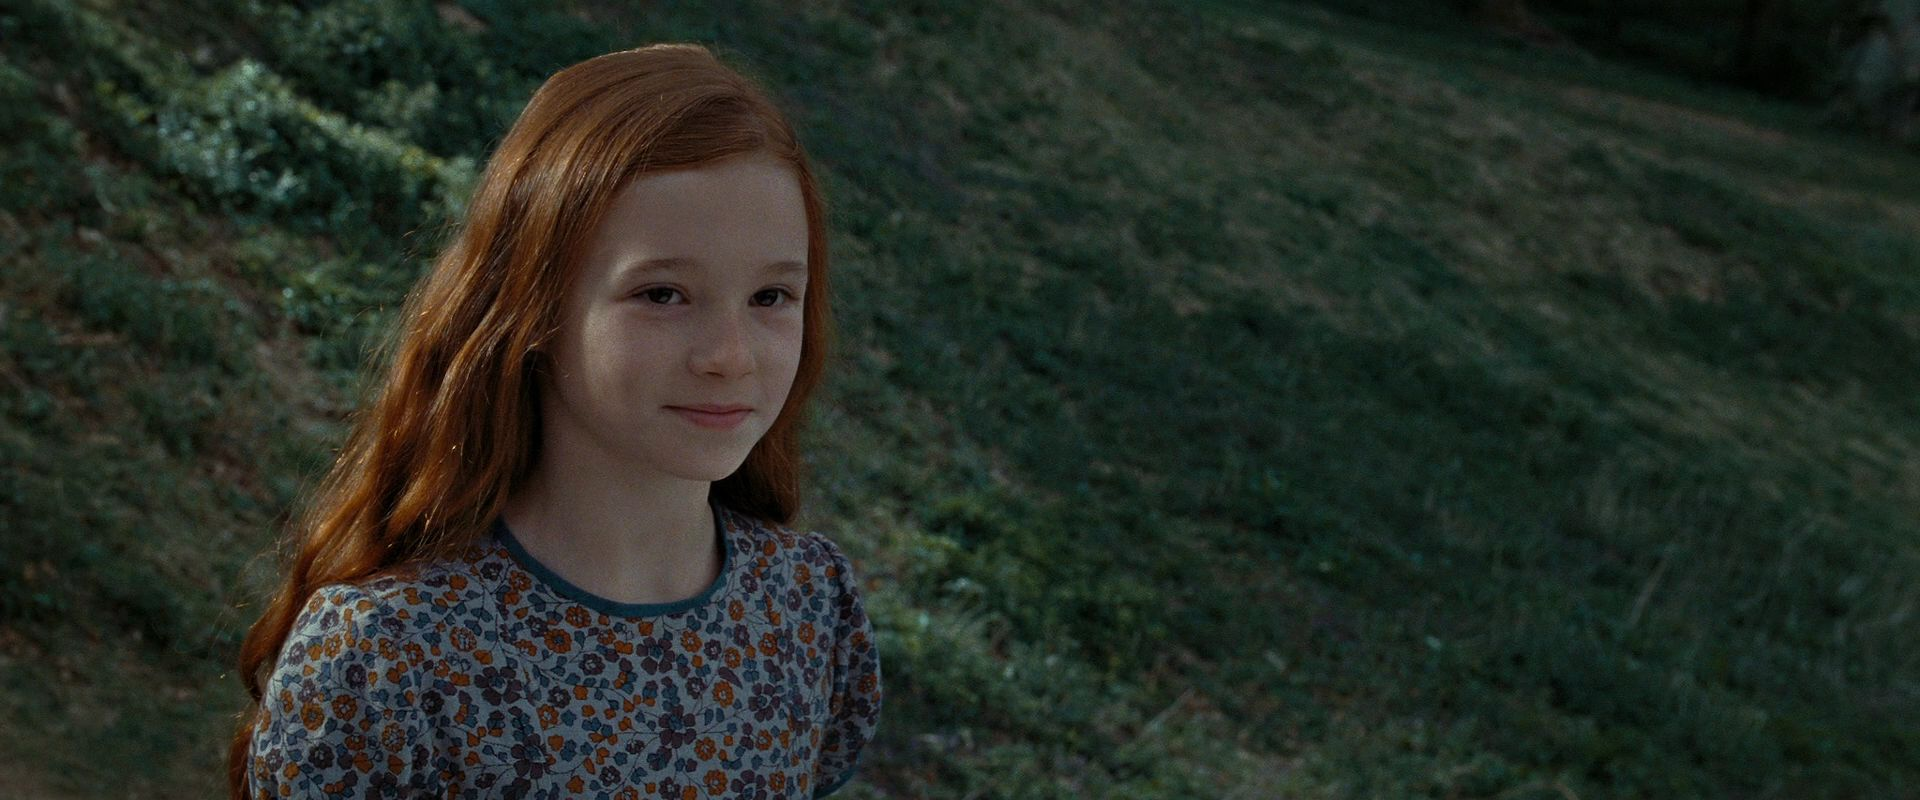 Ellie as Lily in Harry Potter Lily Potter Eyes